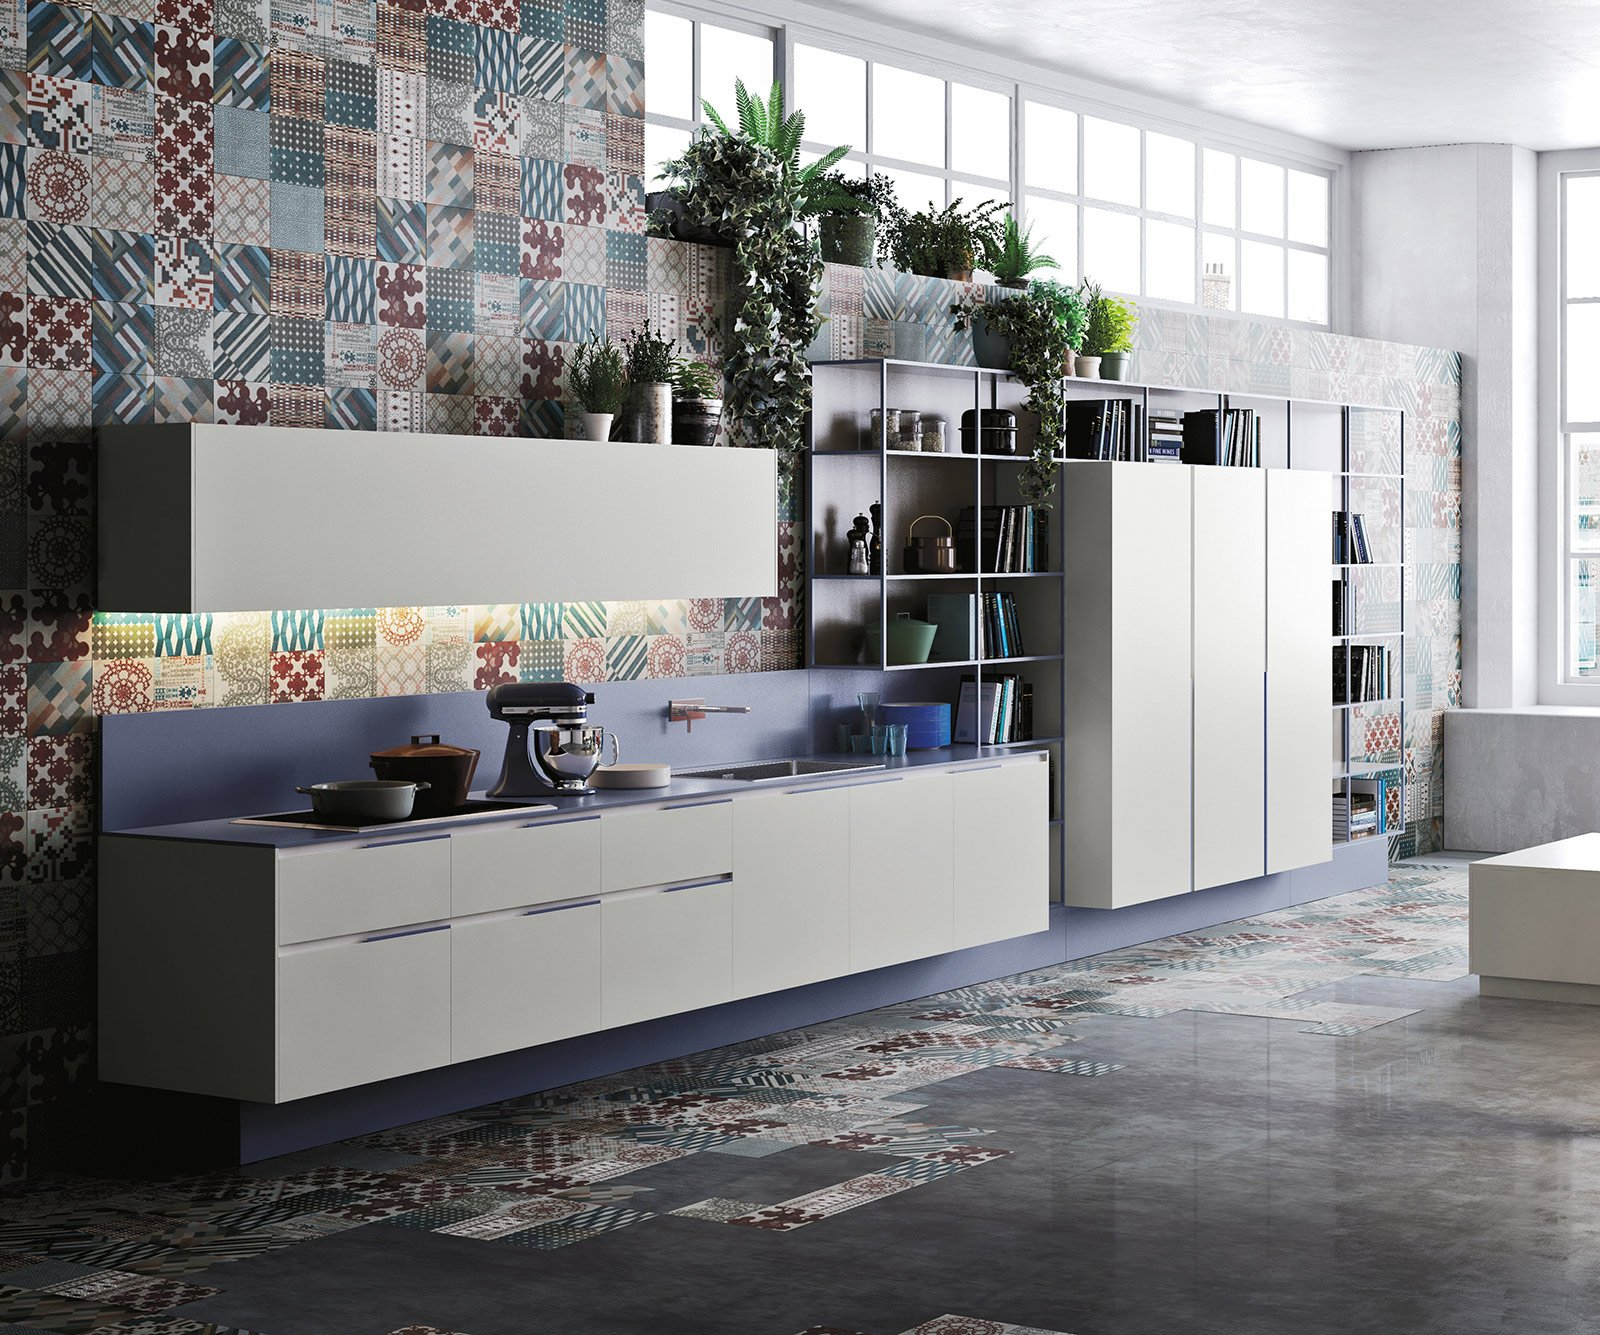 2017 Kitchen Interior Design Trends: Salone Del Mobile 2014: Mix Di Materiali Per Le Nuove